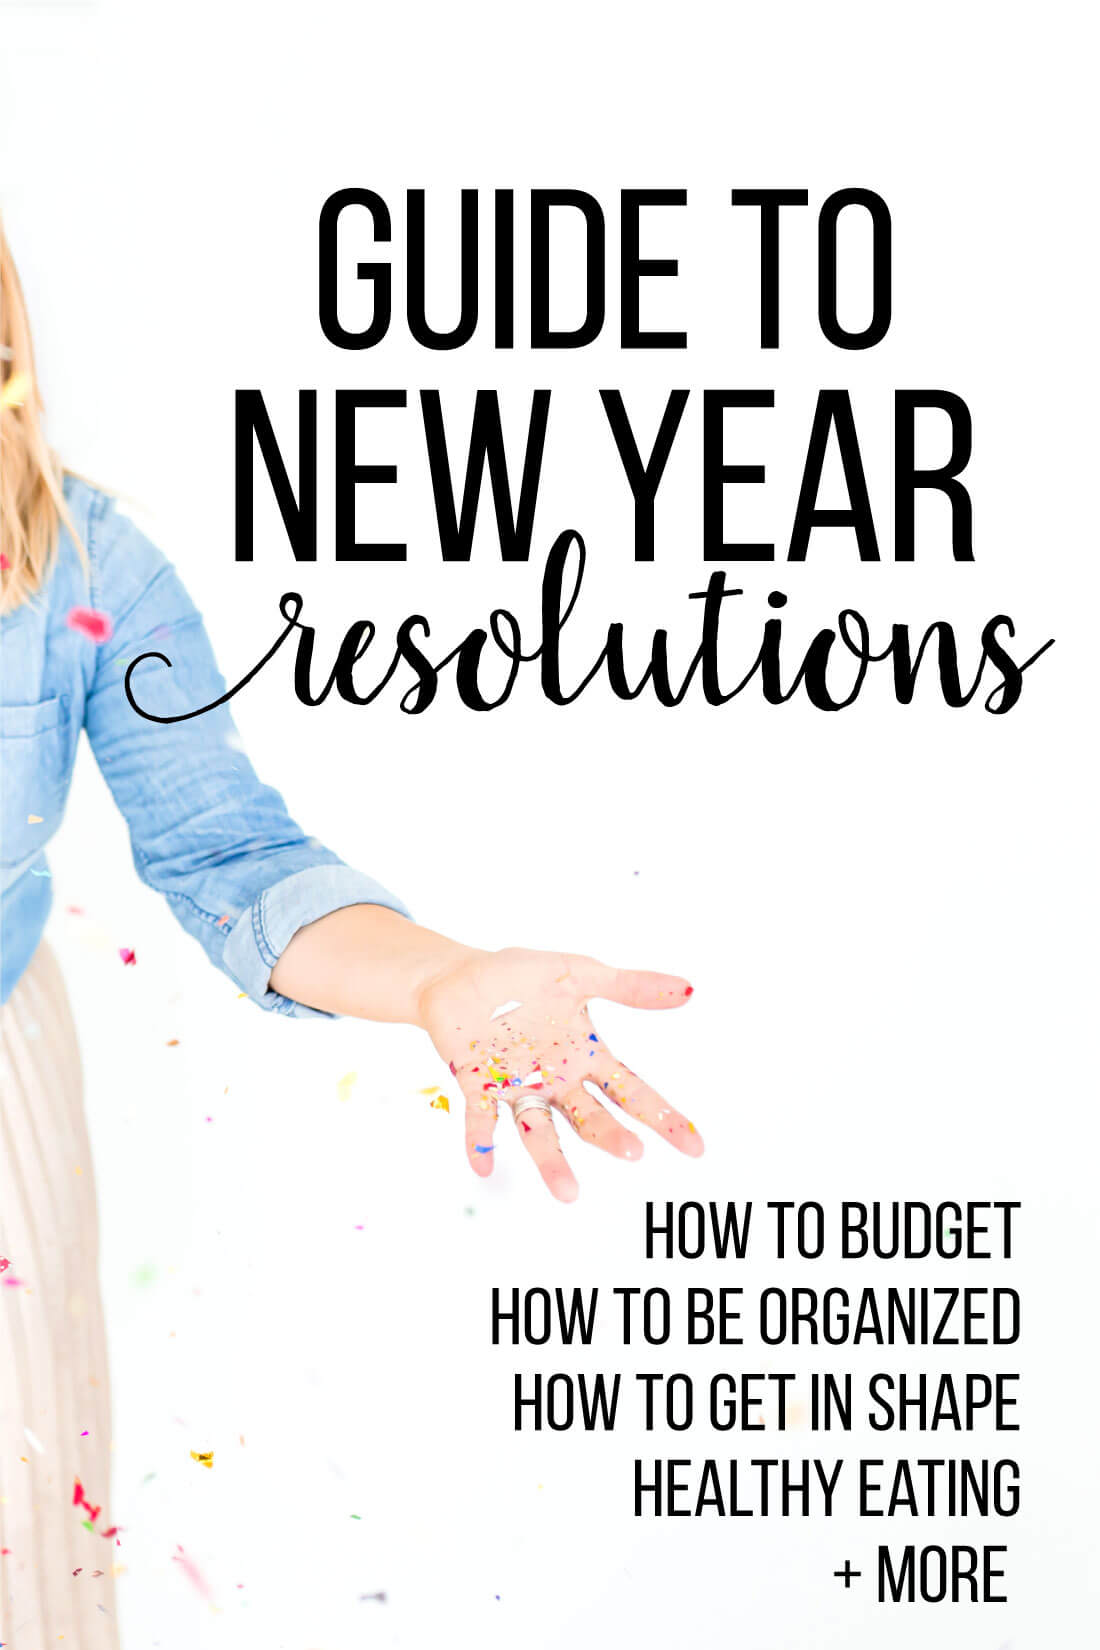 Guide to New Year's Resolution - full guide of everything you could want to tackle this year! www.thirtyhandmadedays.com